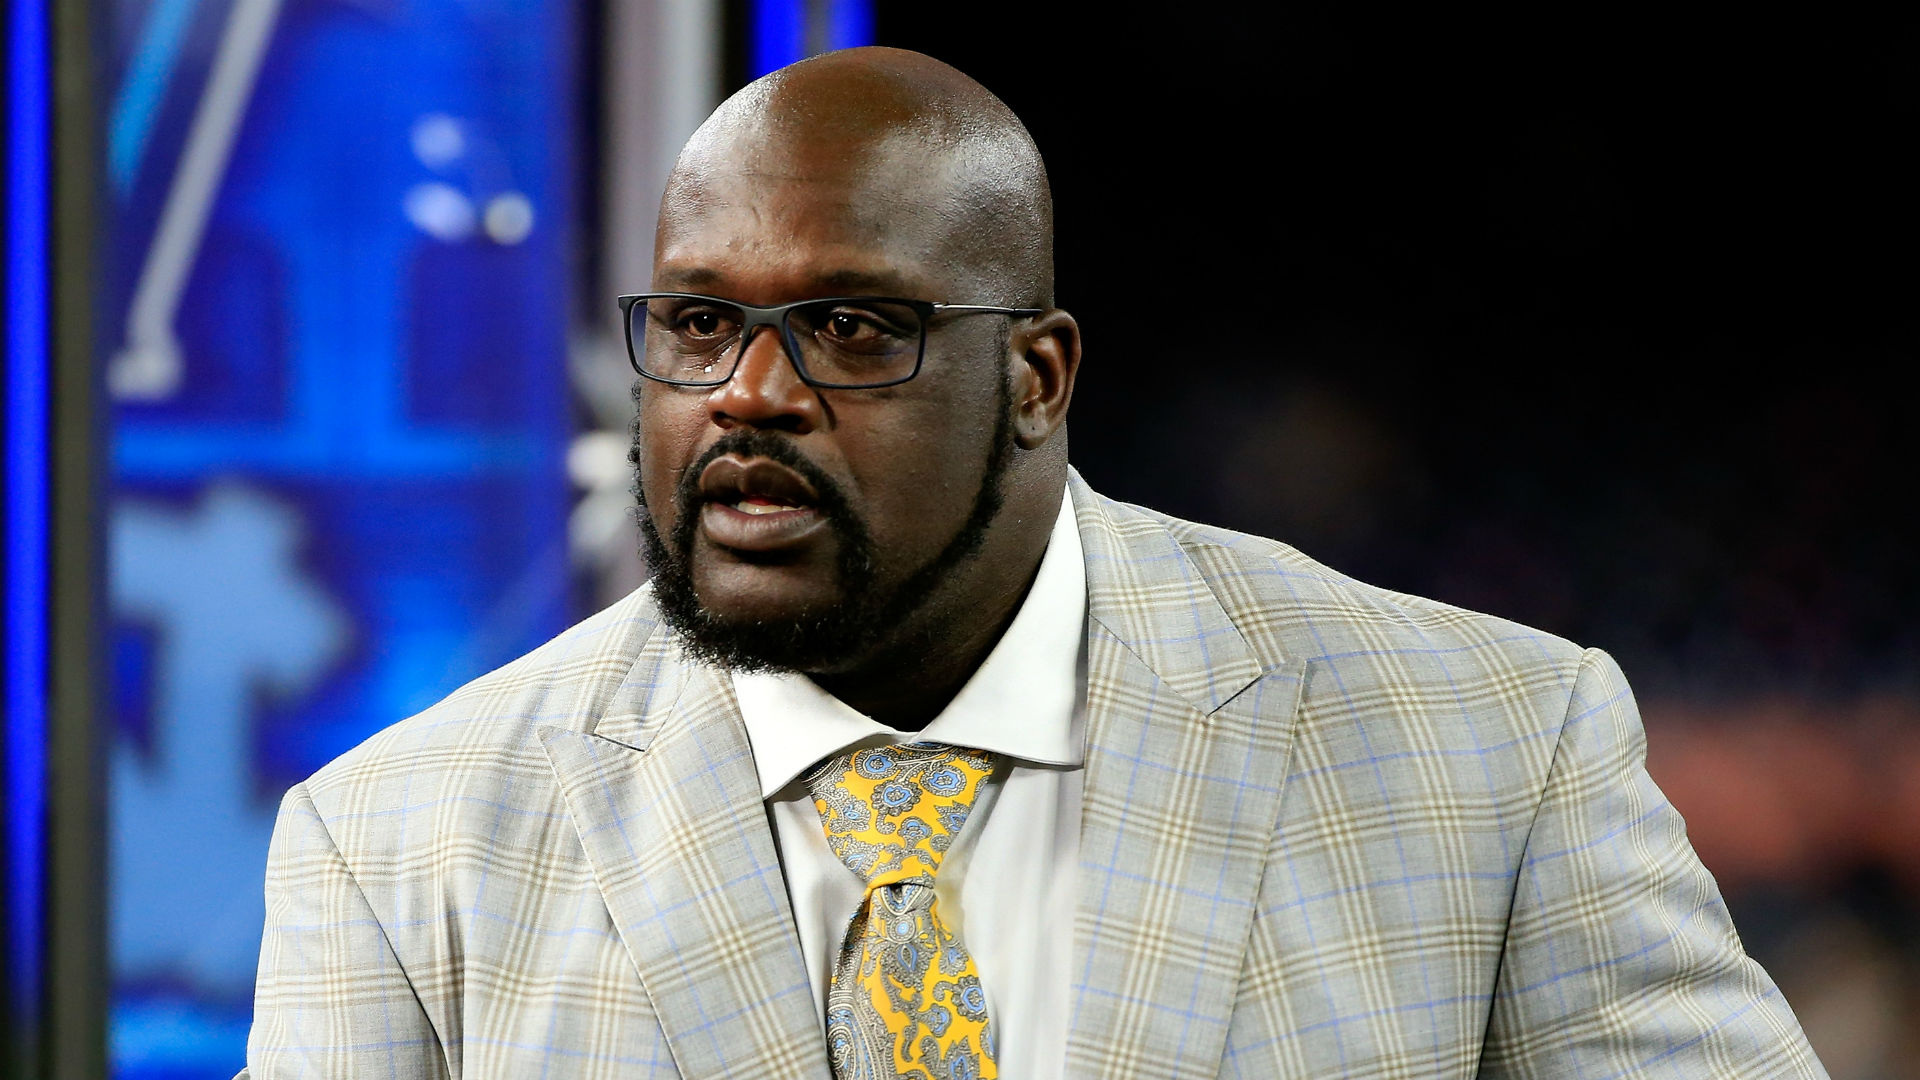 Shaquille O'Neal thinks his Lakers teams could 'easily' beat the Warriors